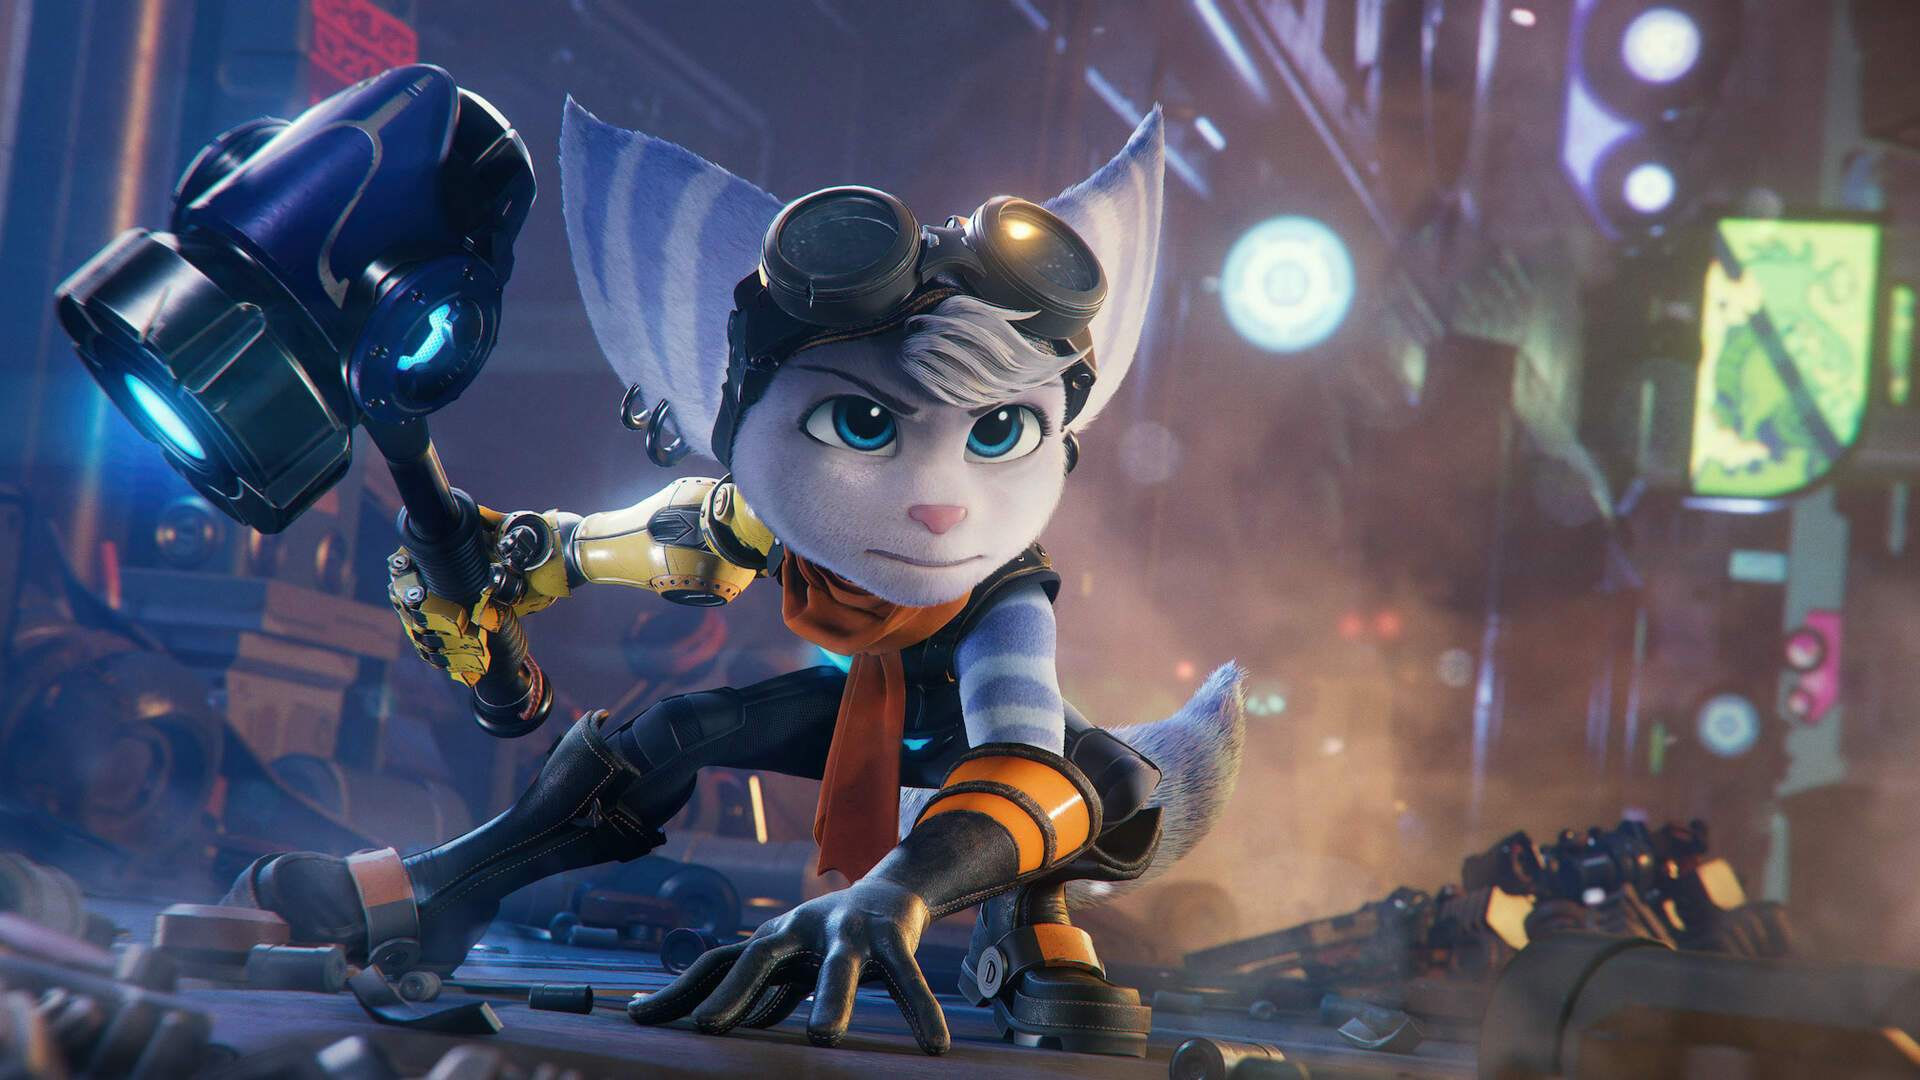 Yes, the New Female Lombax in Ratchet & Clank: Rift Apart Will Be Playable